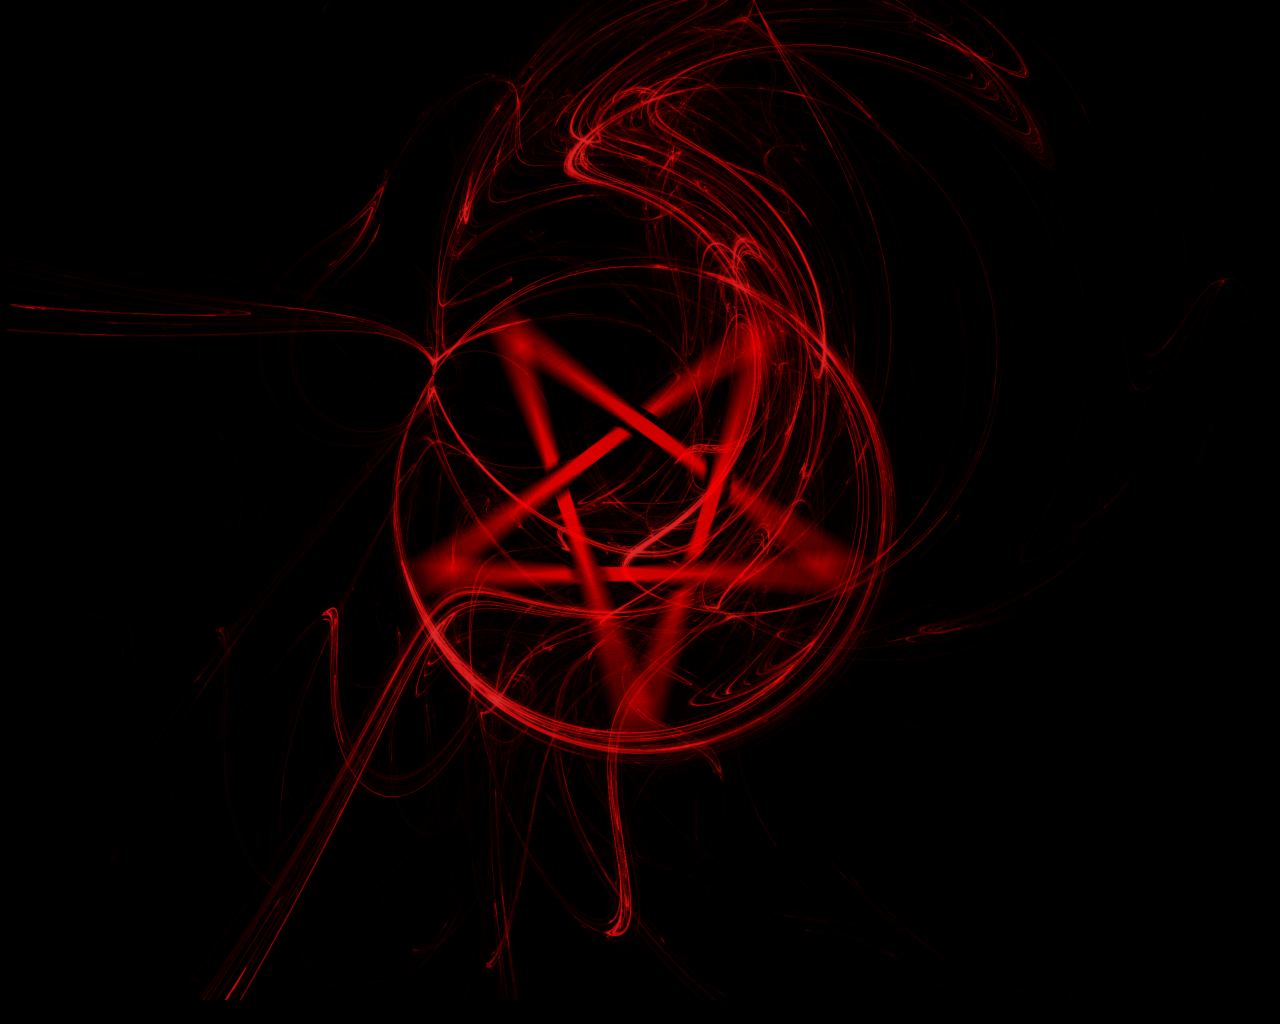 Pentacle Wallpaper 1280x1024